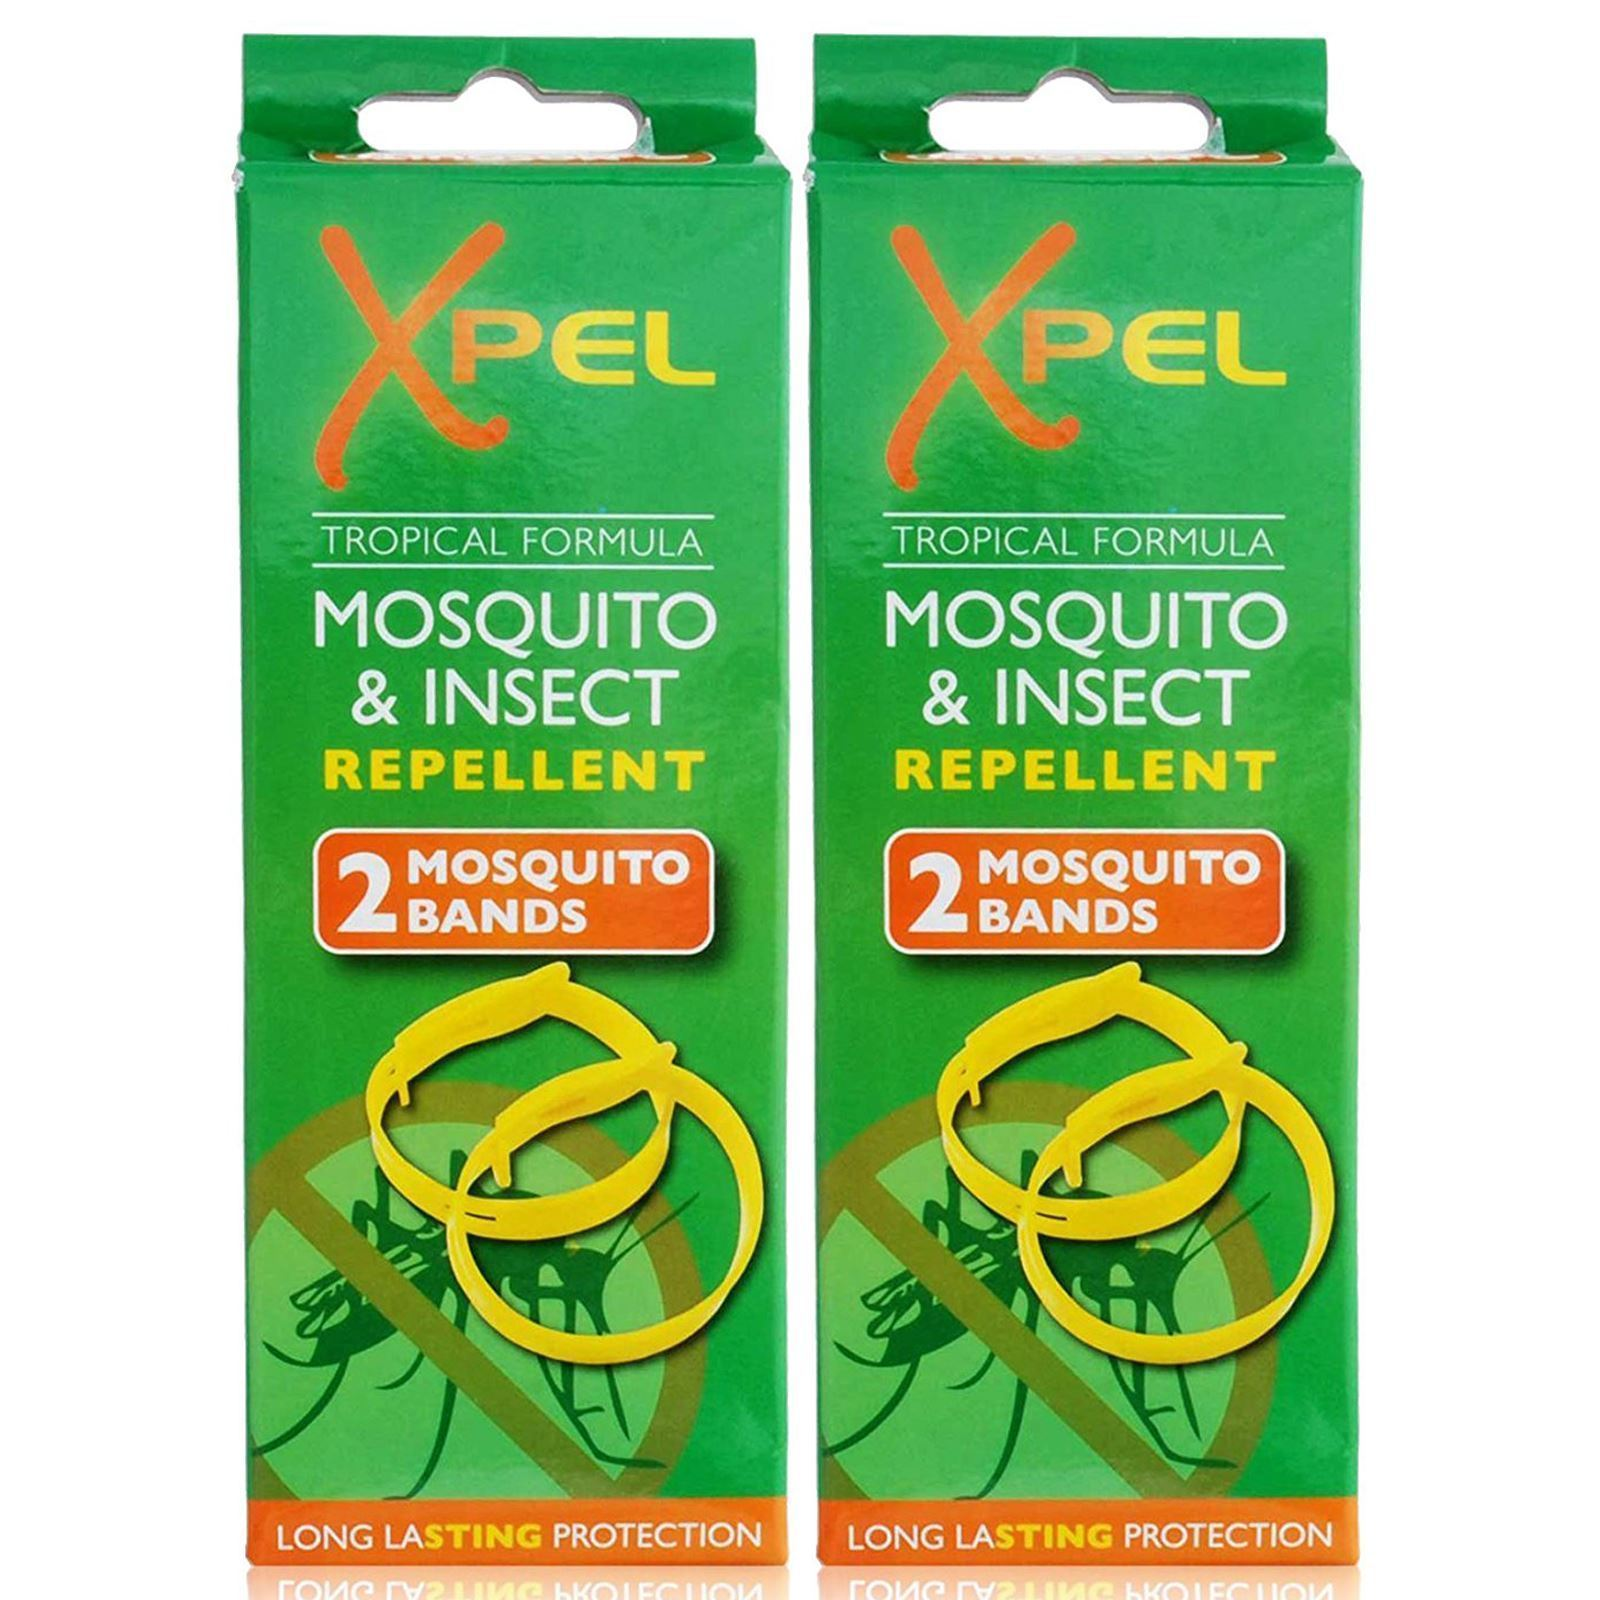 Xpel 4 x Grownup Bug & Parasite Bug Resilient Wrist Bands Security Bracelets